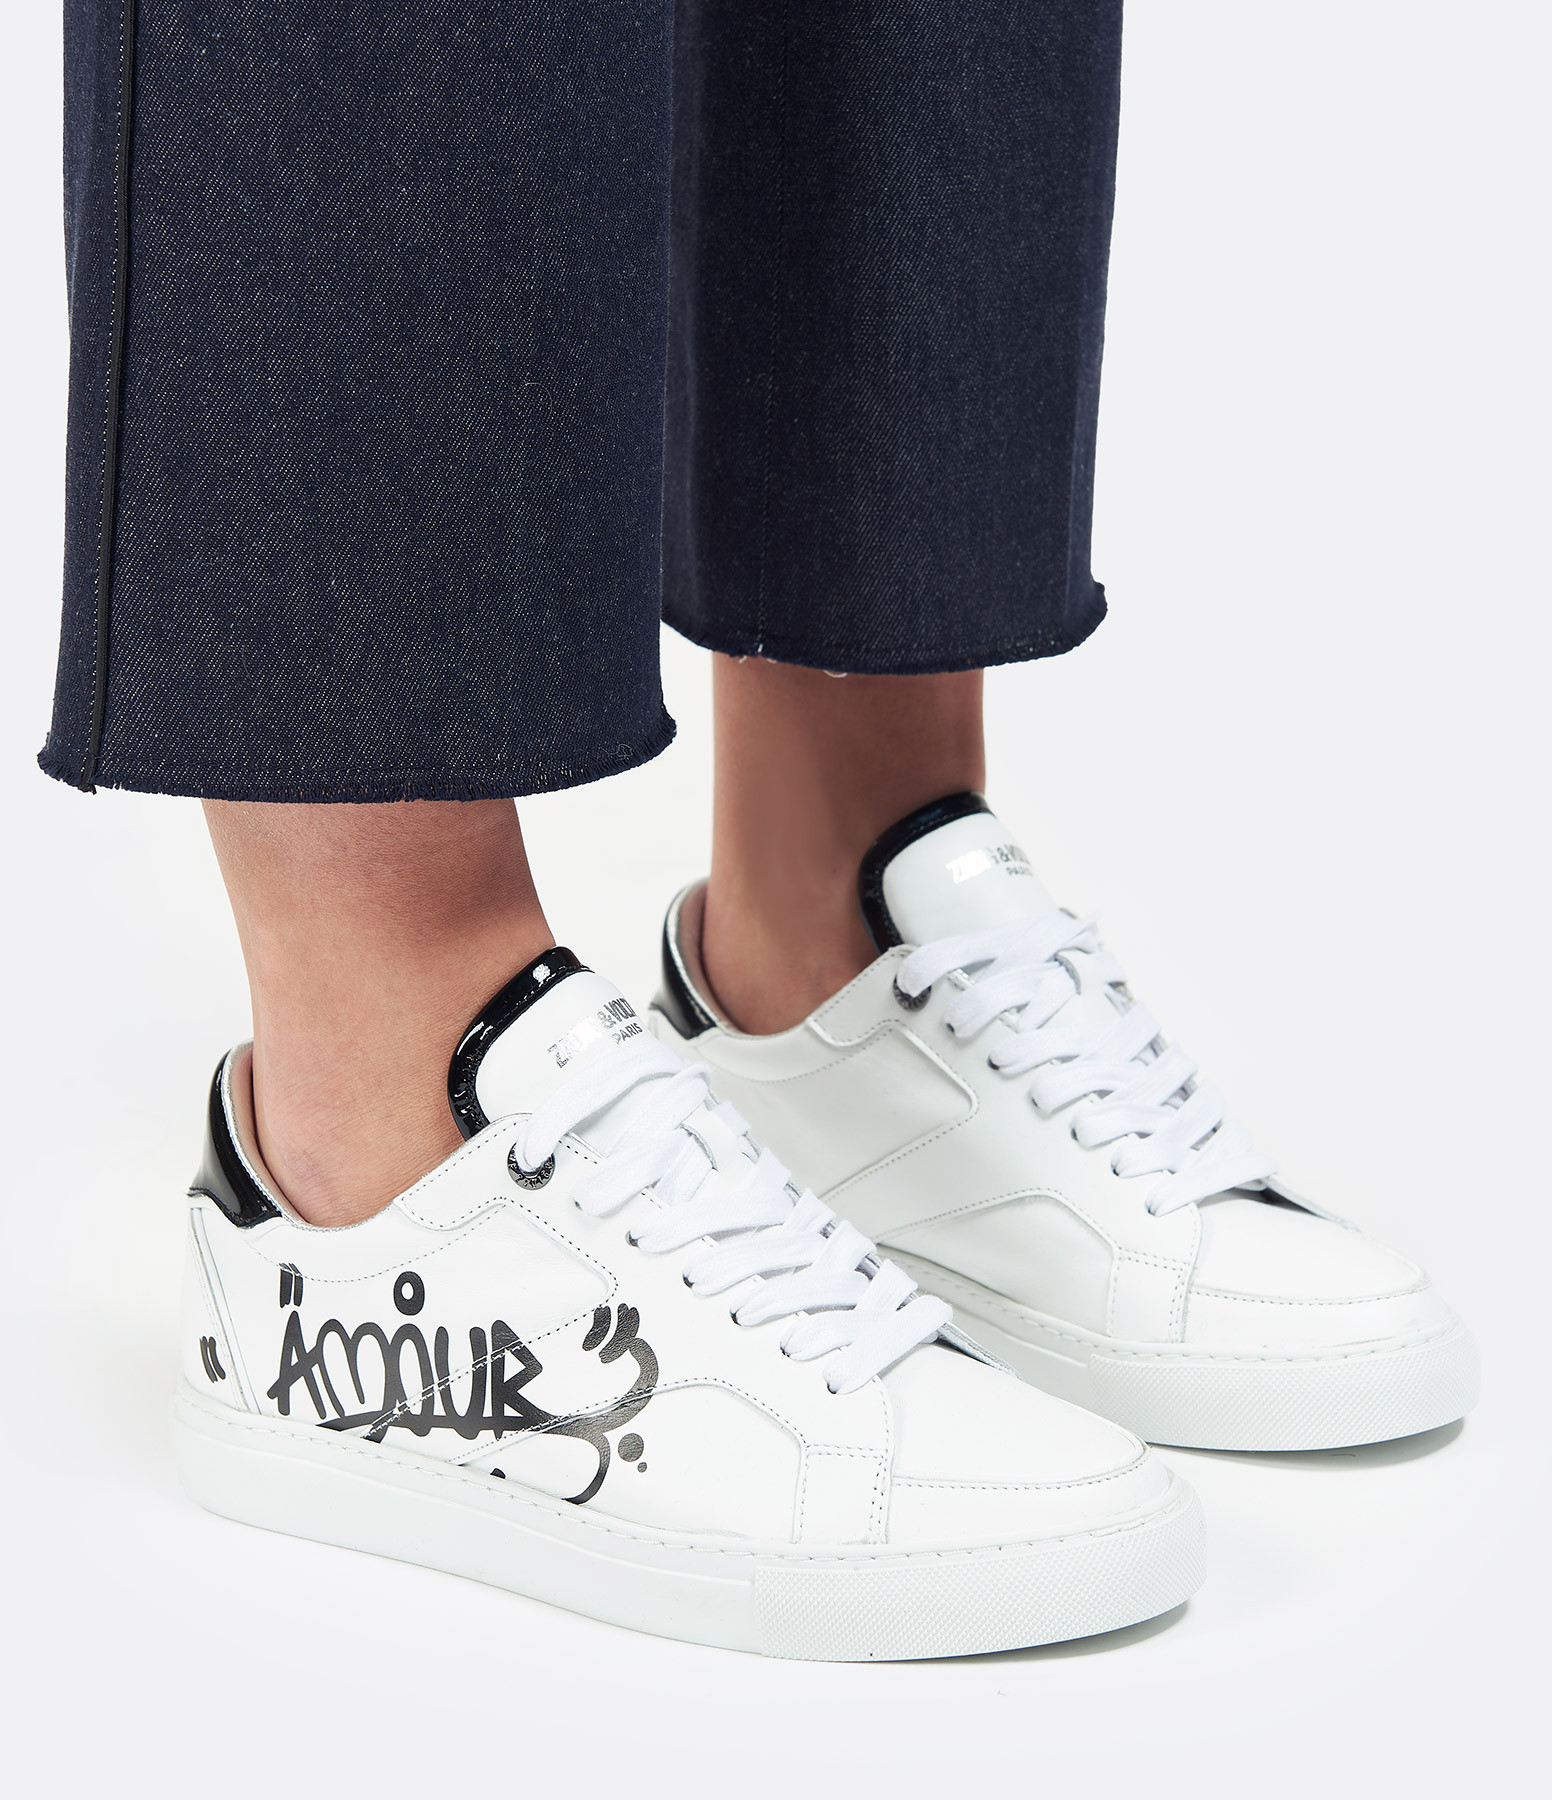 ZADIG & VOLTAIRE - Baskets ZV1747 Amour Cuir Blanc